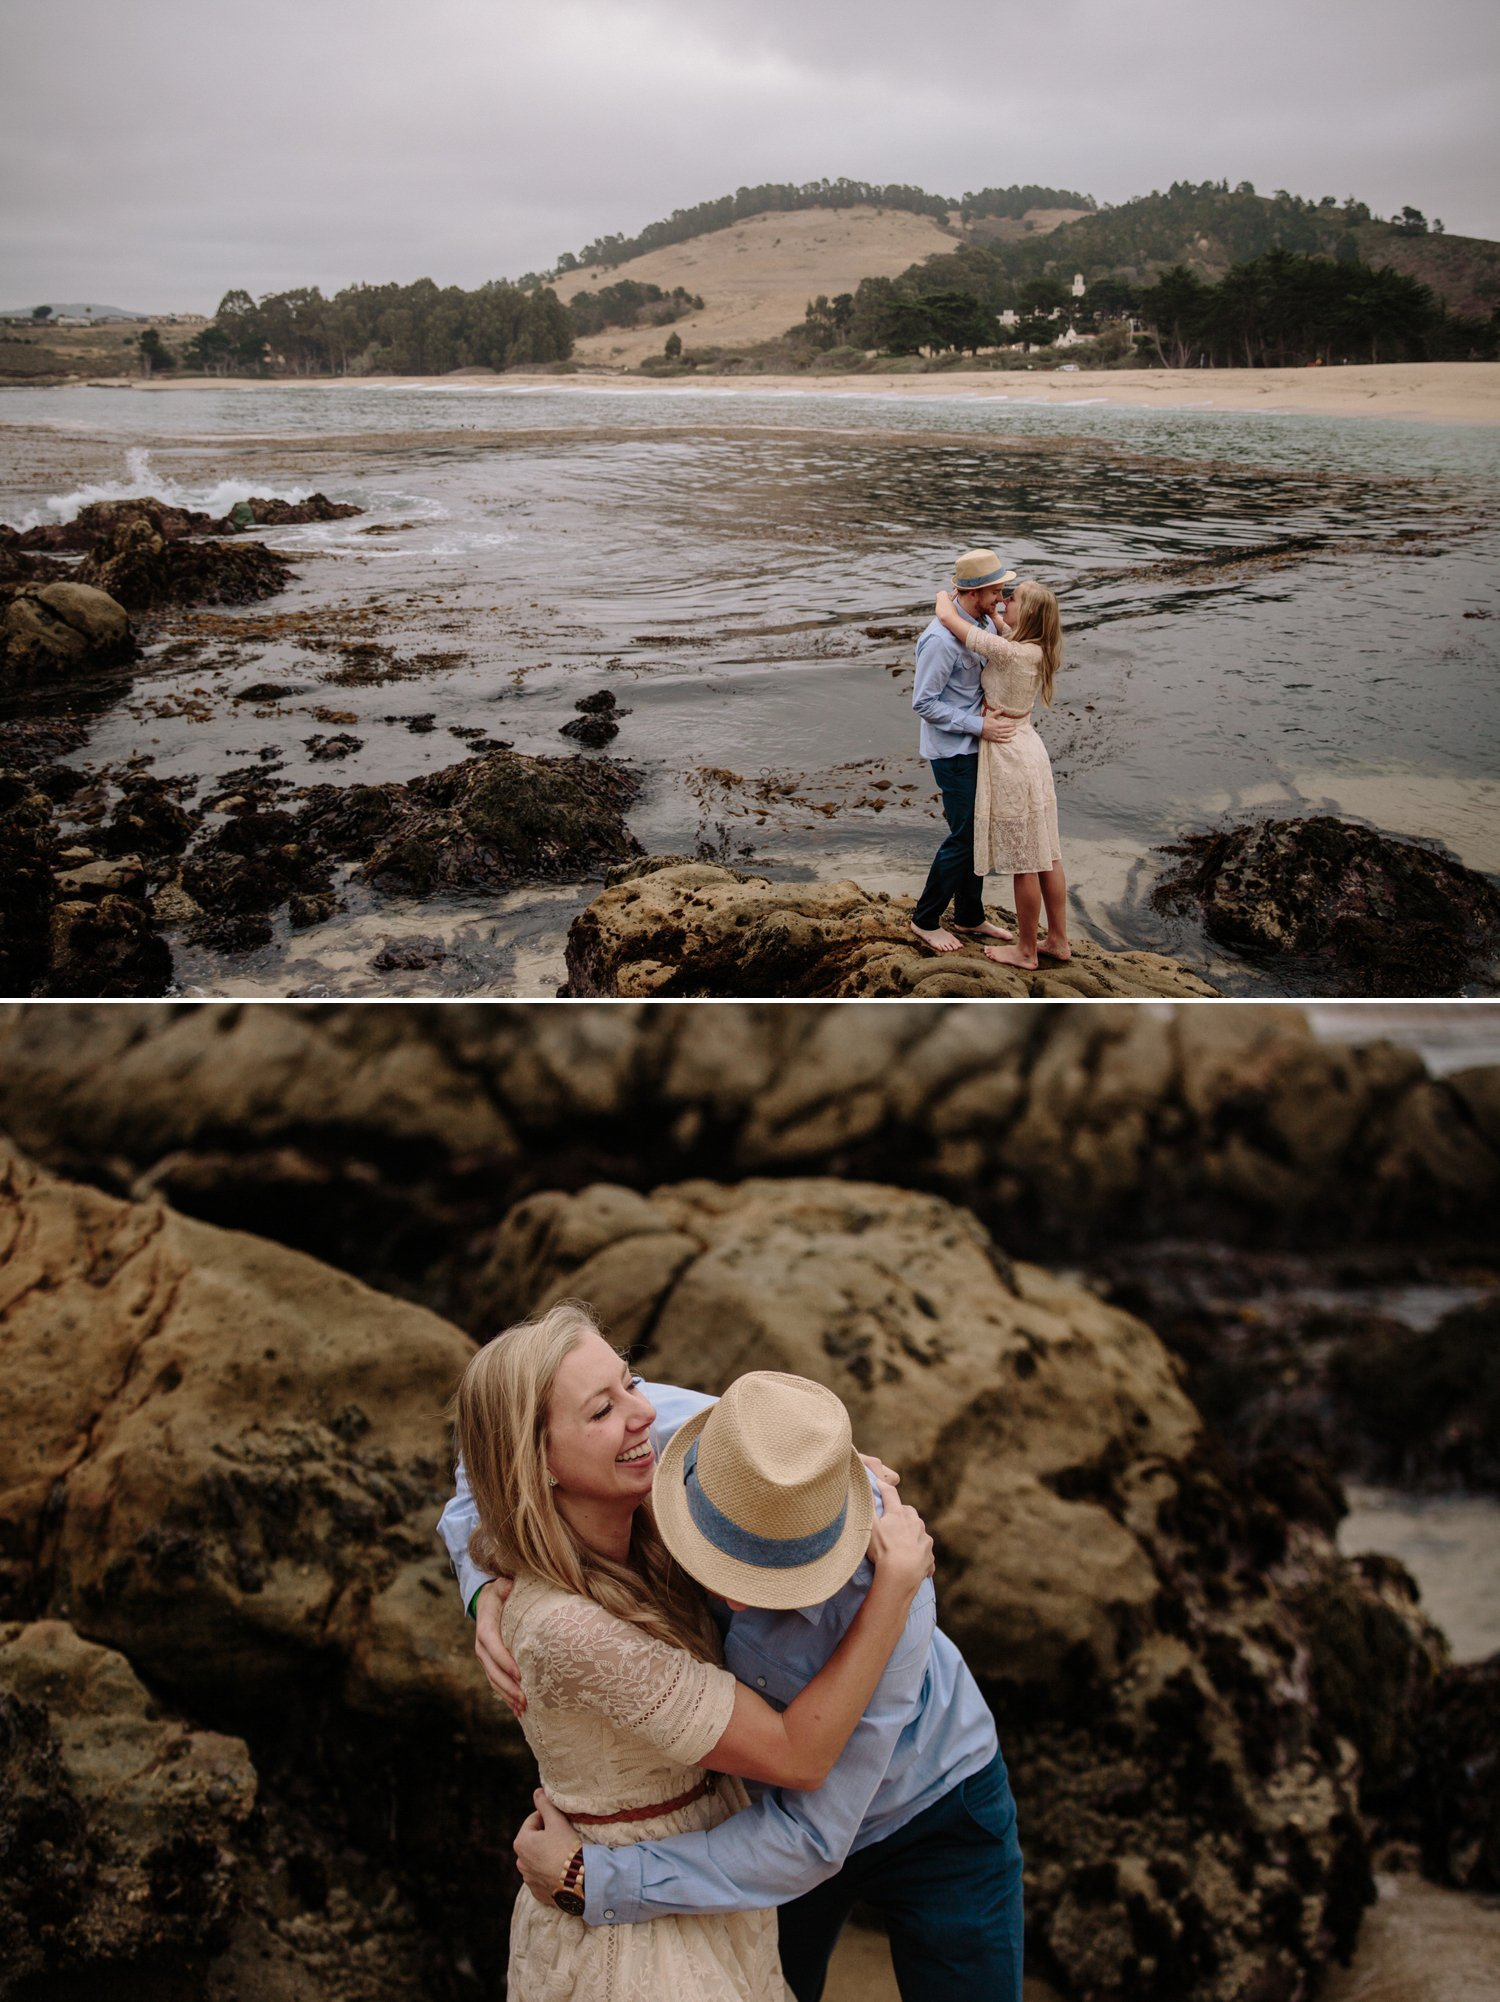 Carmel wedding photographer Paige Nelson